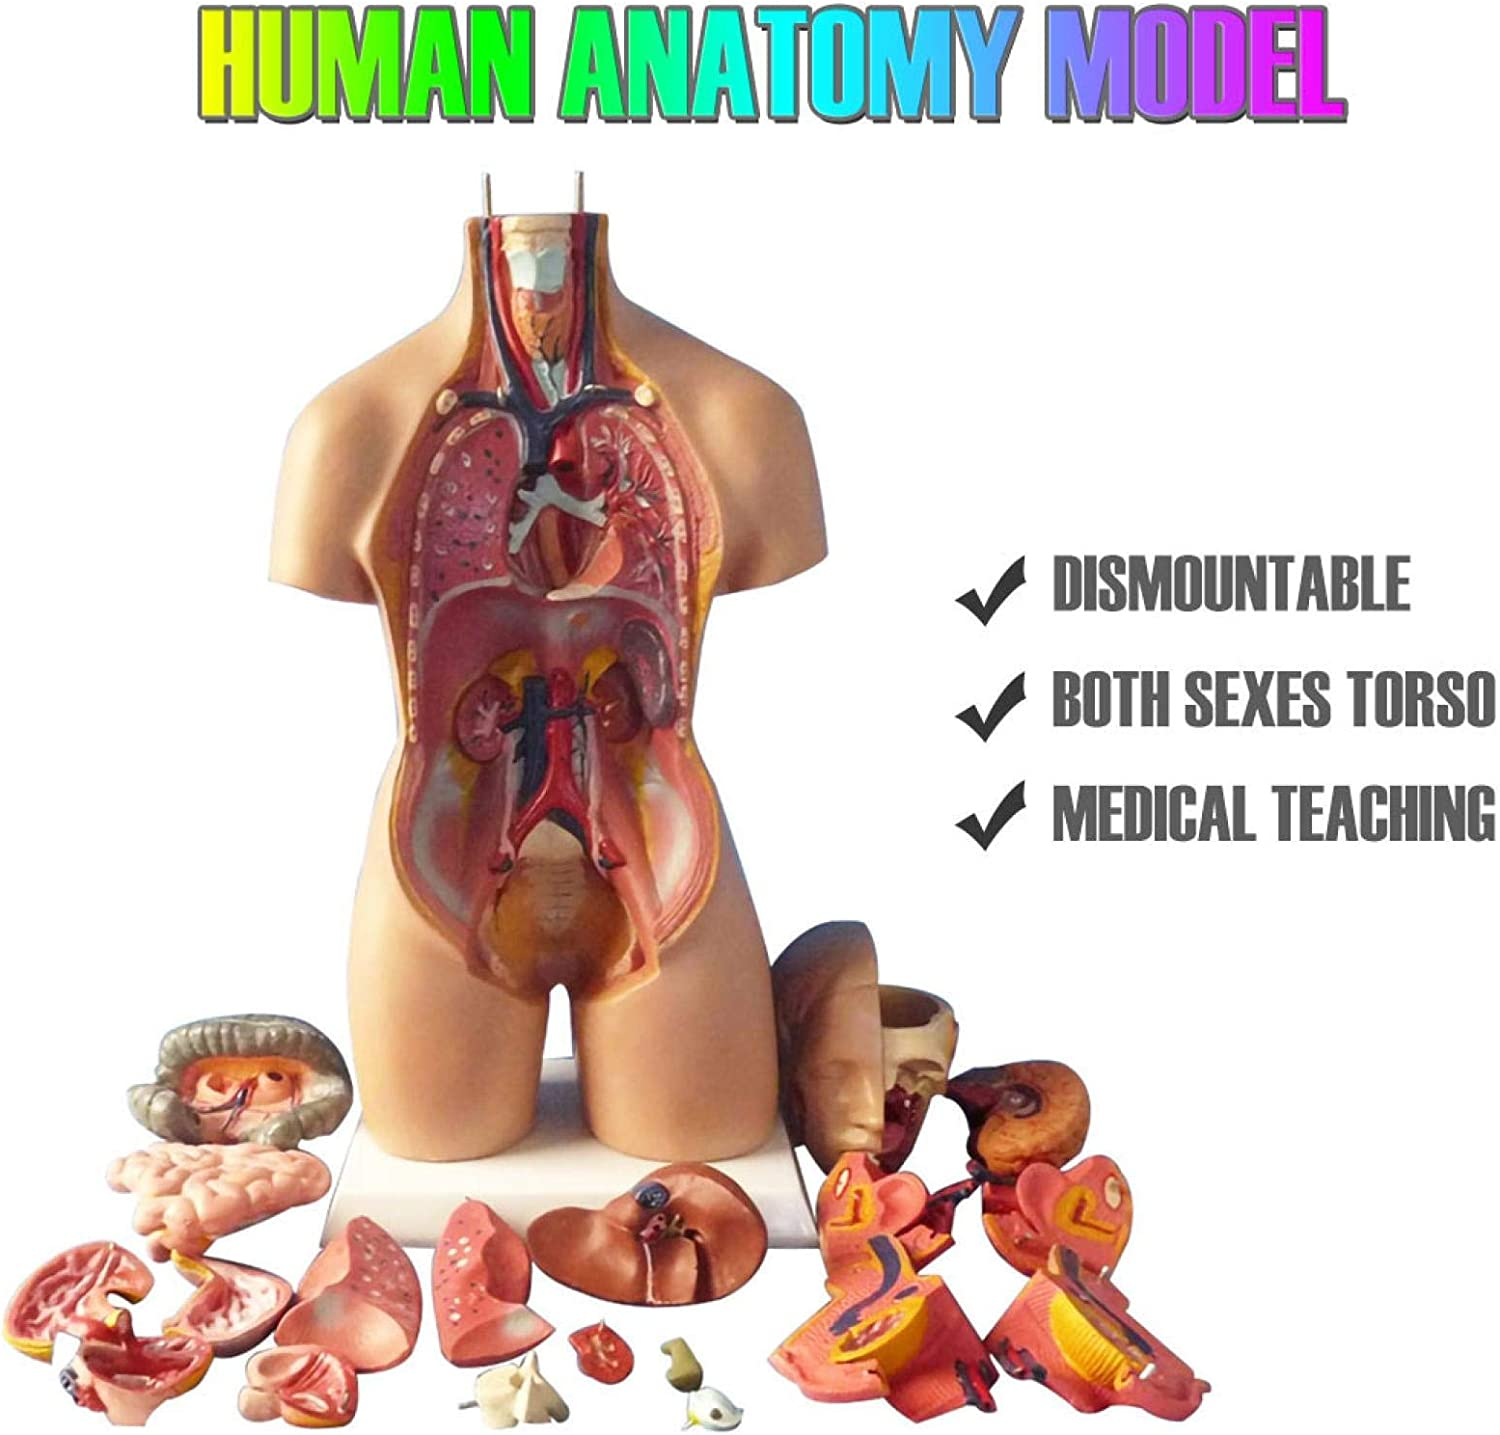 Multicolor UpdateClassic Human Torso Model 11 Inch 4D Anatomical Assembly Model of Human Organs Removable 23 Pieces Unisex Human Torso Model Life Size Medical Anatomy Educational Teaching Tool